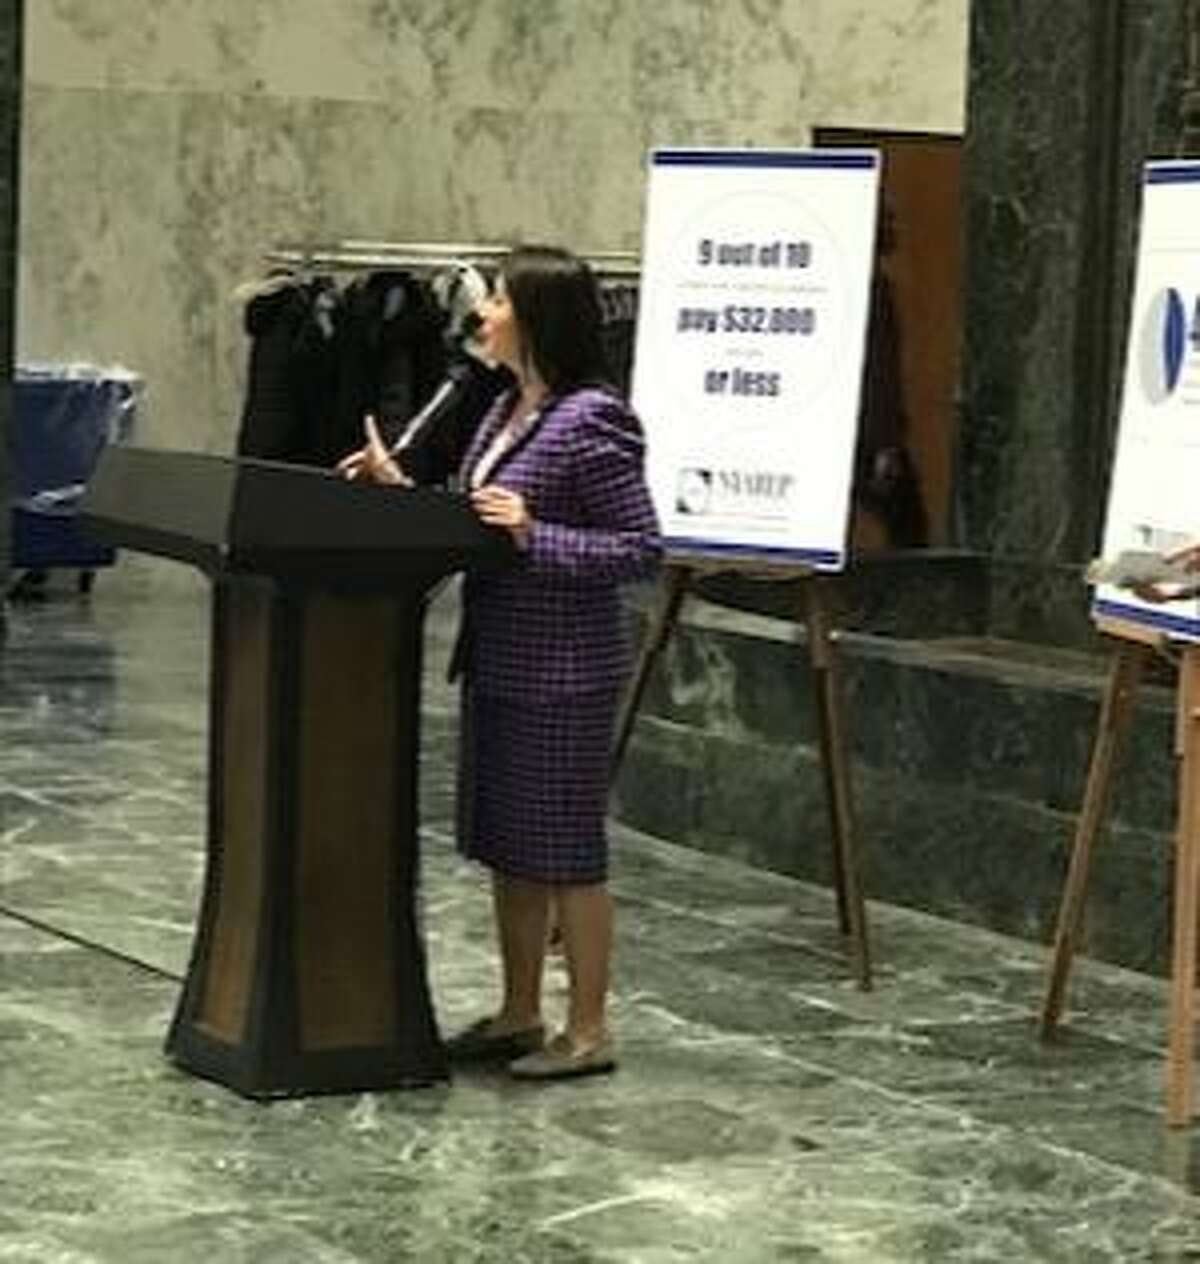 State Sen. Jessica Ramos speaks about the need for better job training for New Yorkers who are underemployed.